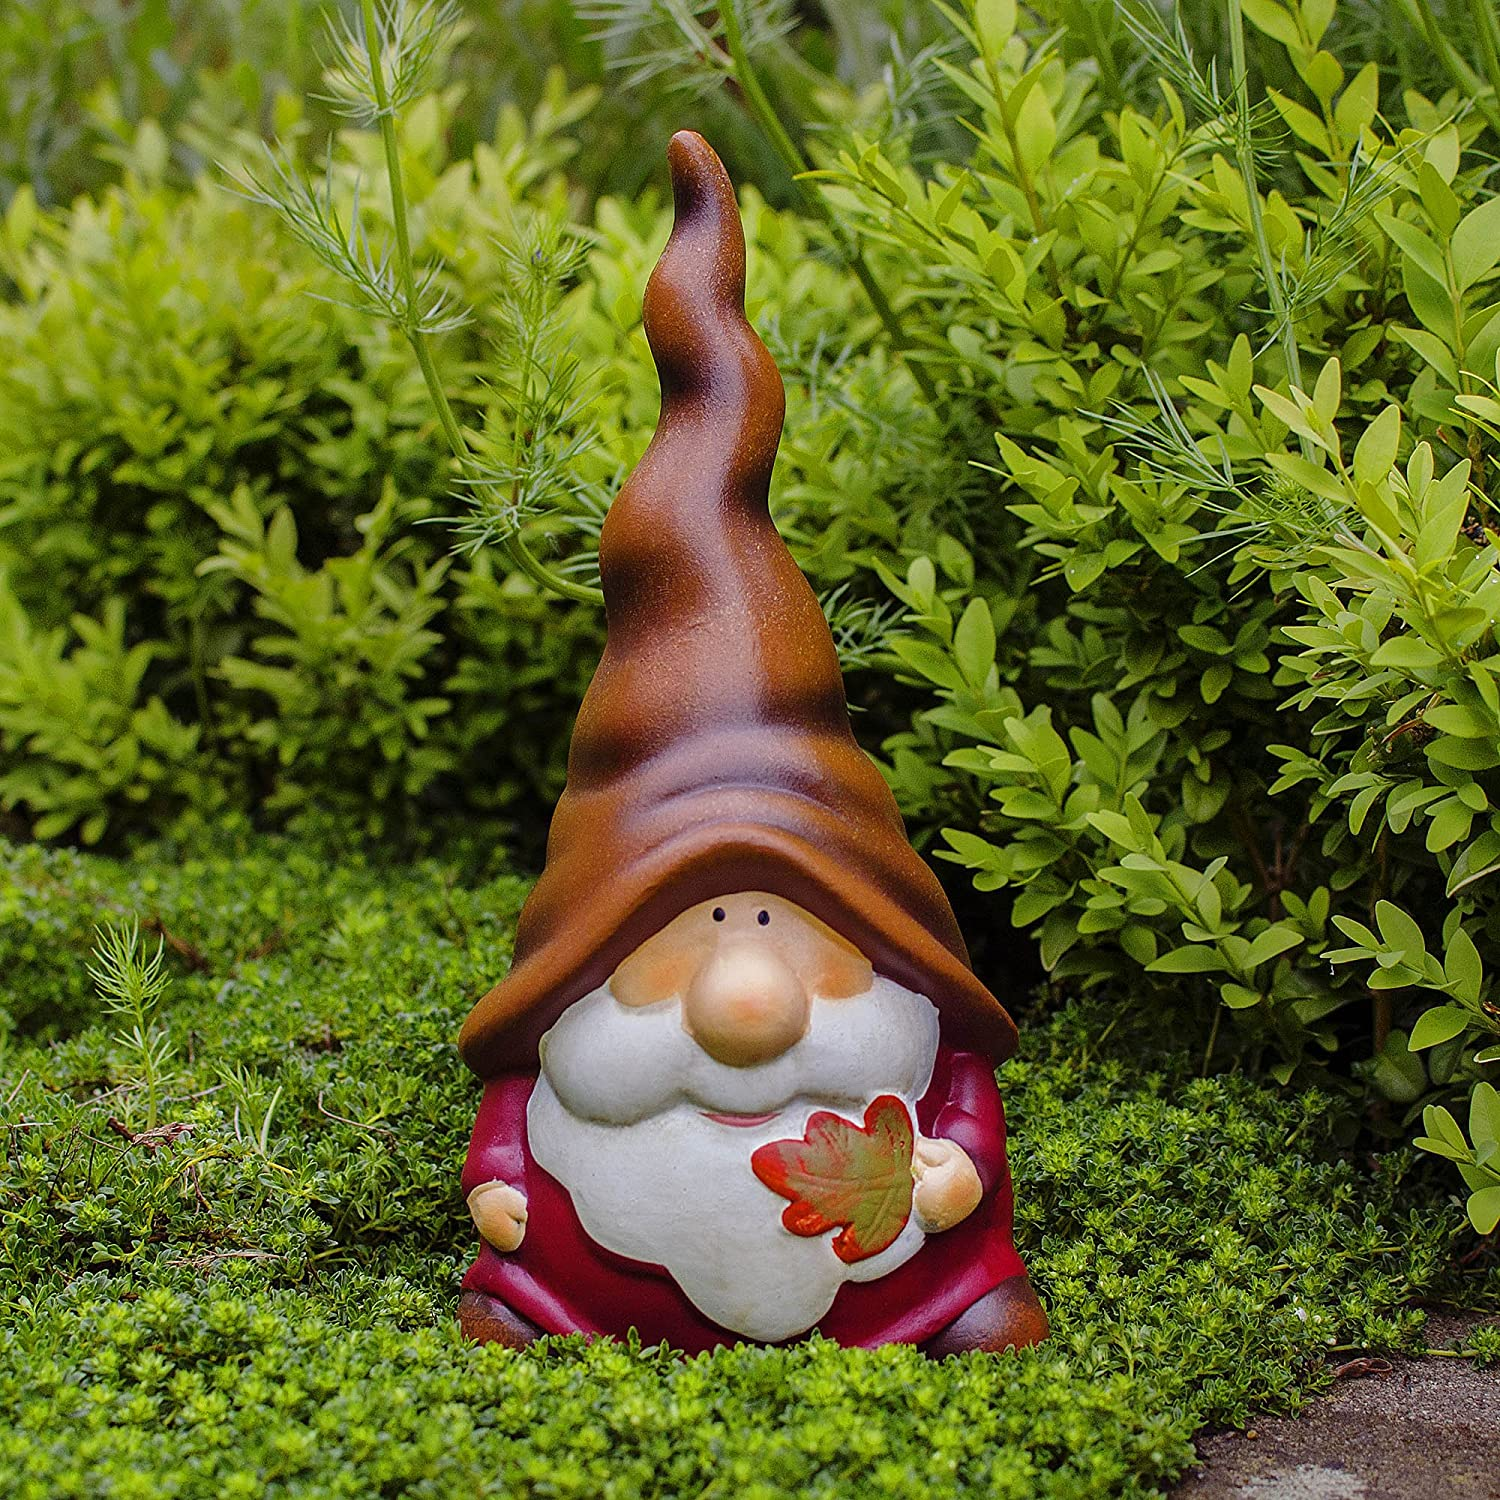 Austin the Terracotta Autumnal Garden Gnome Ornament Holding a Leaf Gardens2you